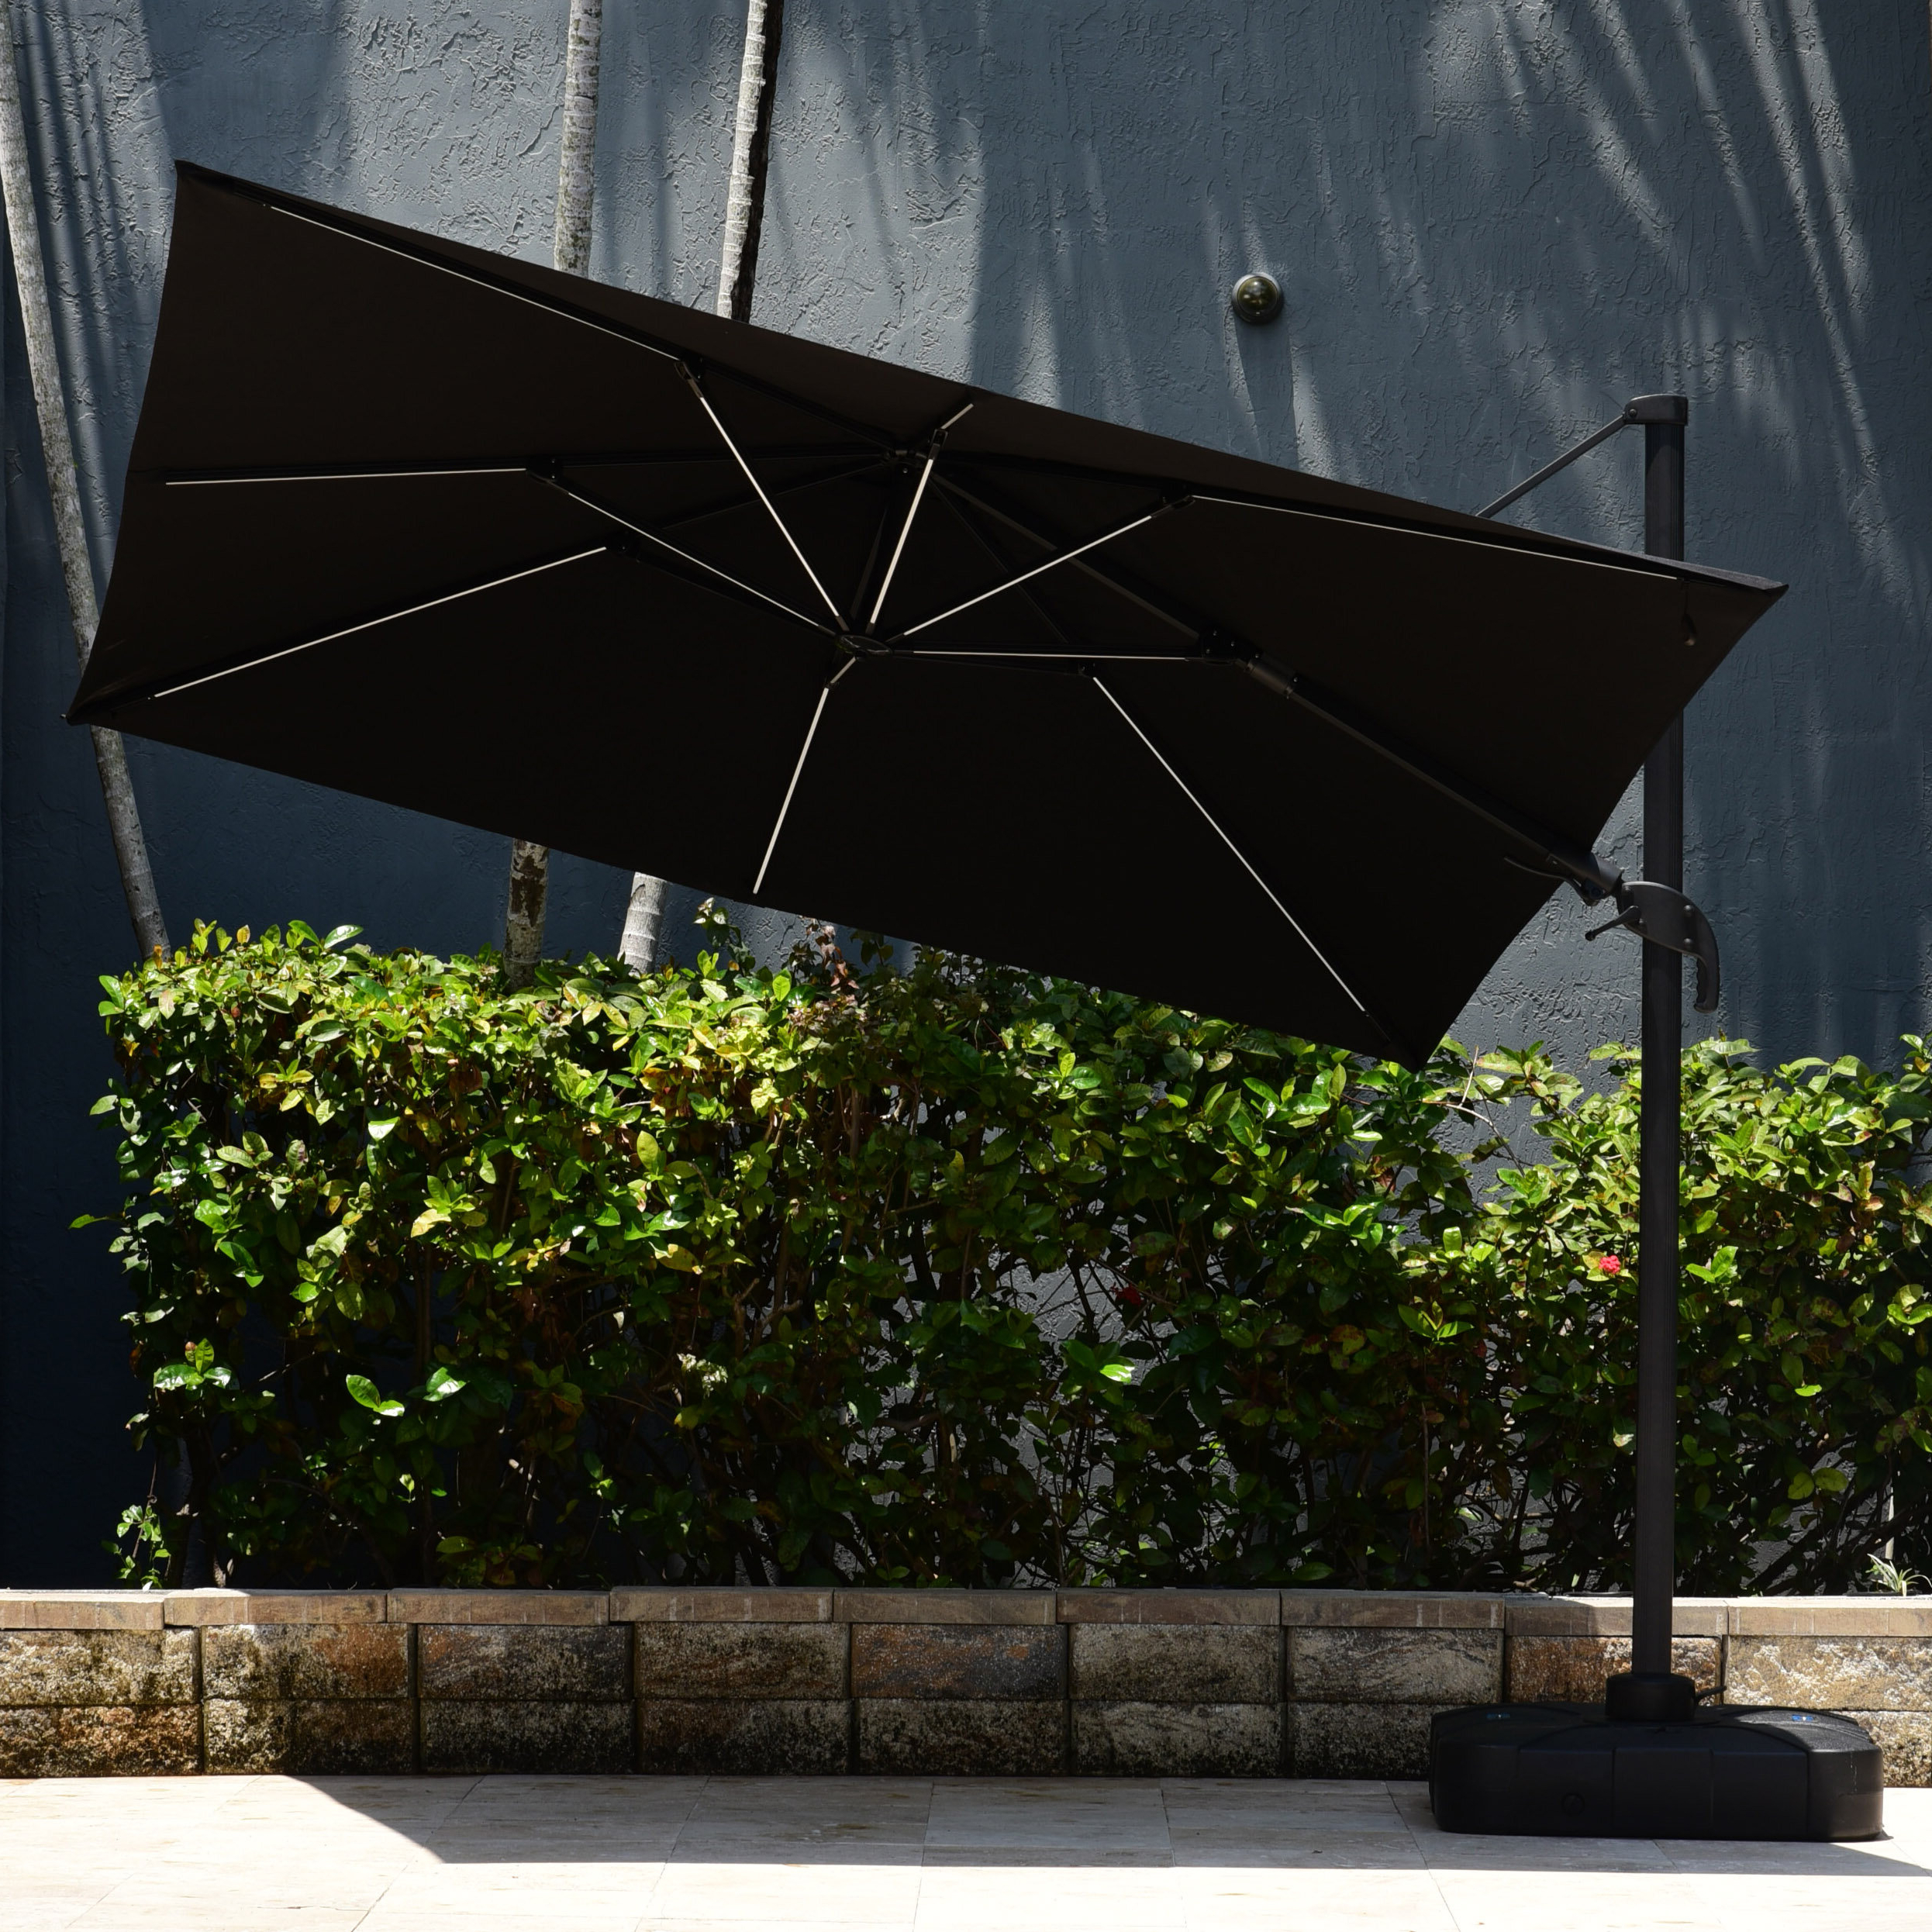 Spitler Square Cantilever Umbrellas In Well Known Spitler 10' Square Cantilever Umbrella (View 10 of 20)